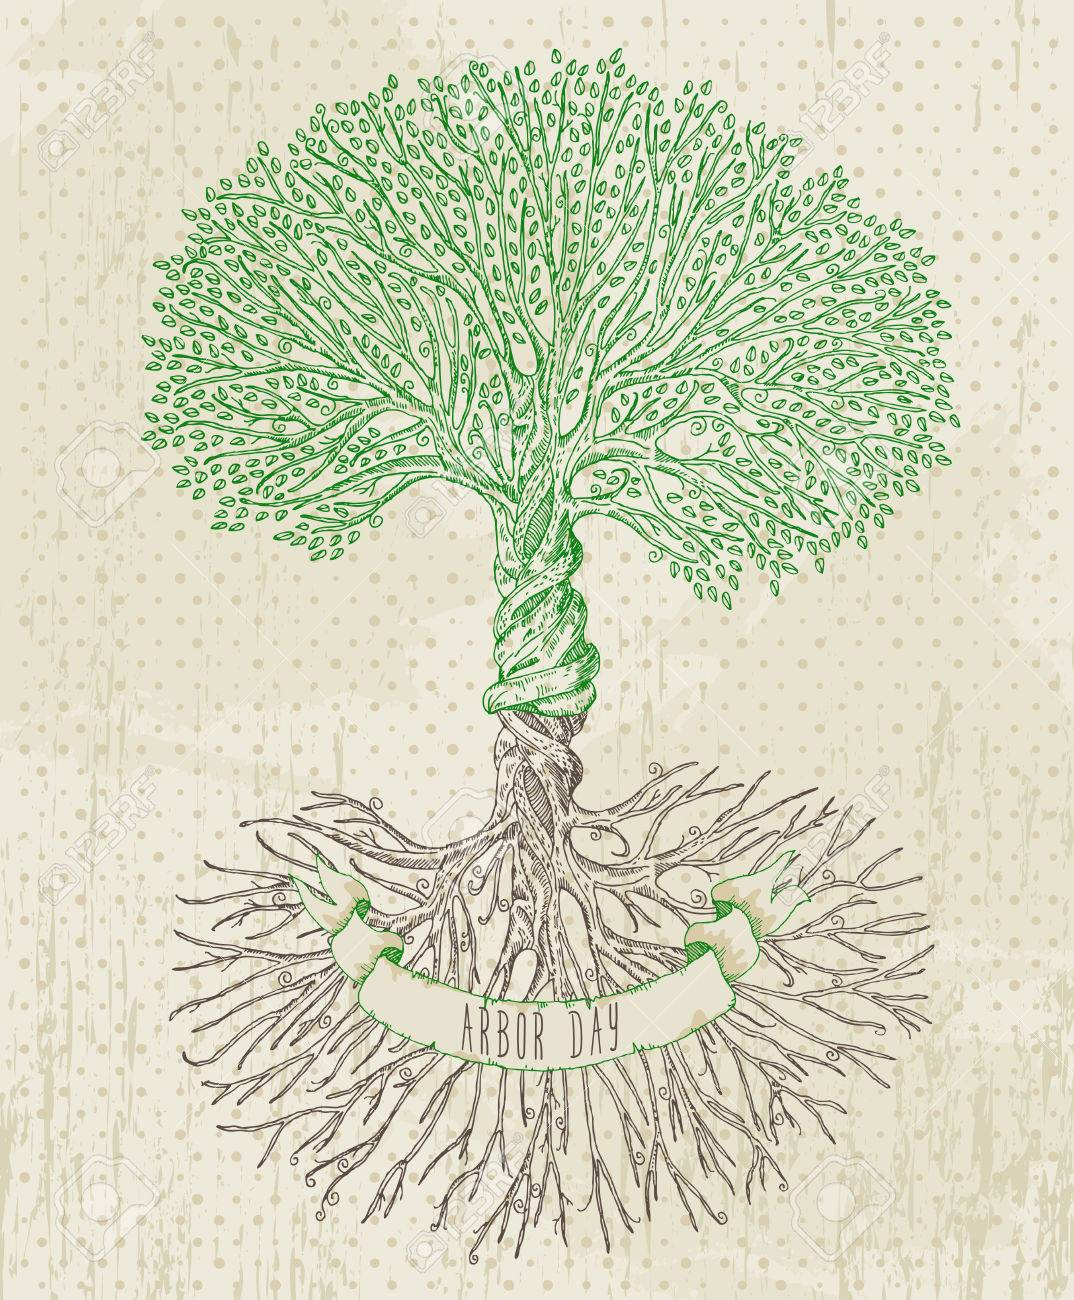 Tree With Roots On Rough Background Arbor Day Poster In Vintage 1074x1300